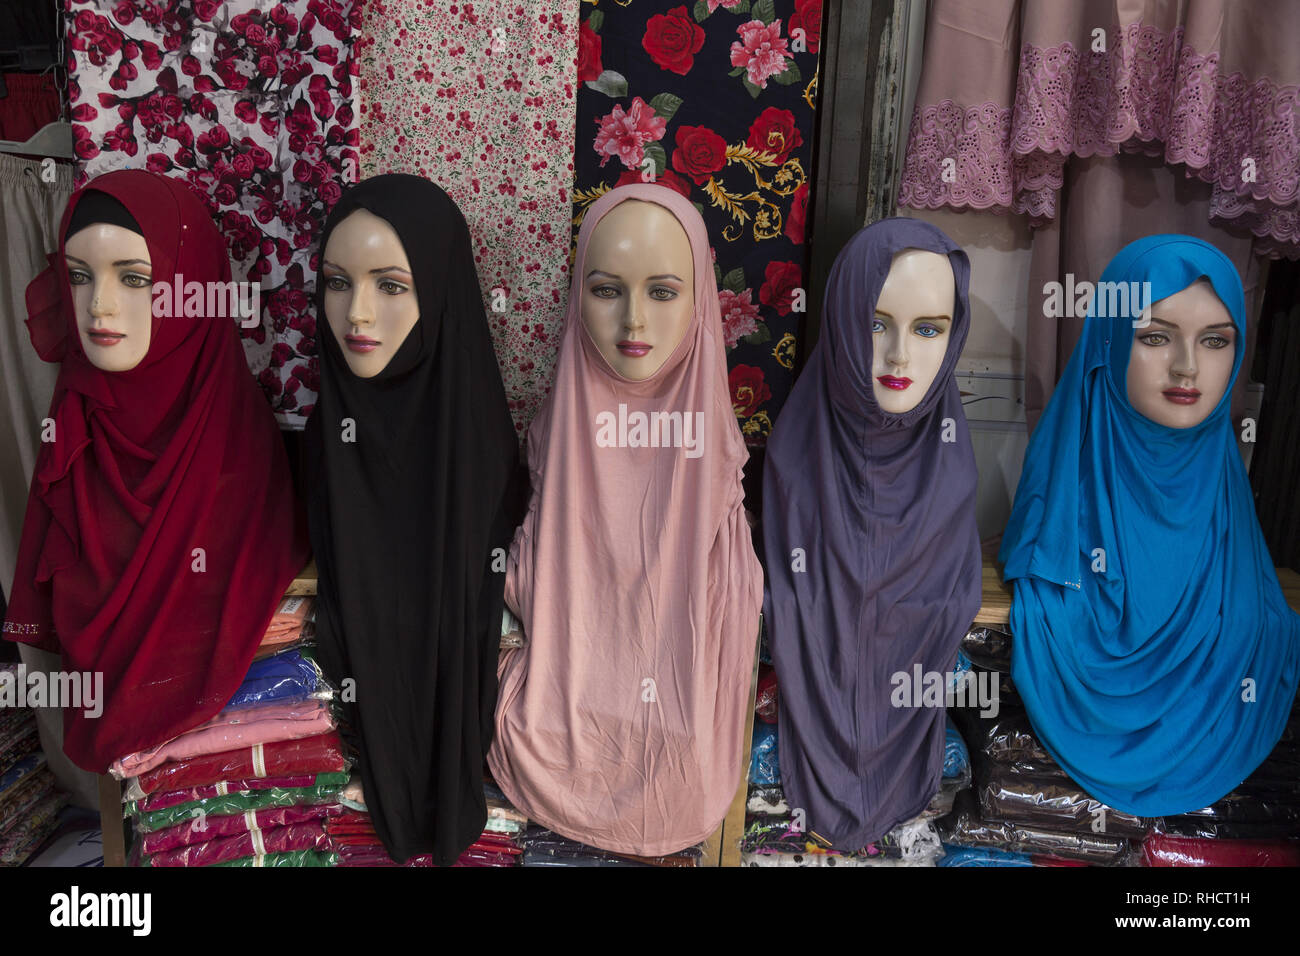 Hijabs shop for muslim women - Stock Image